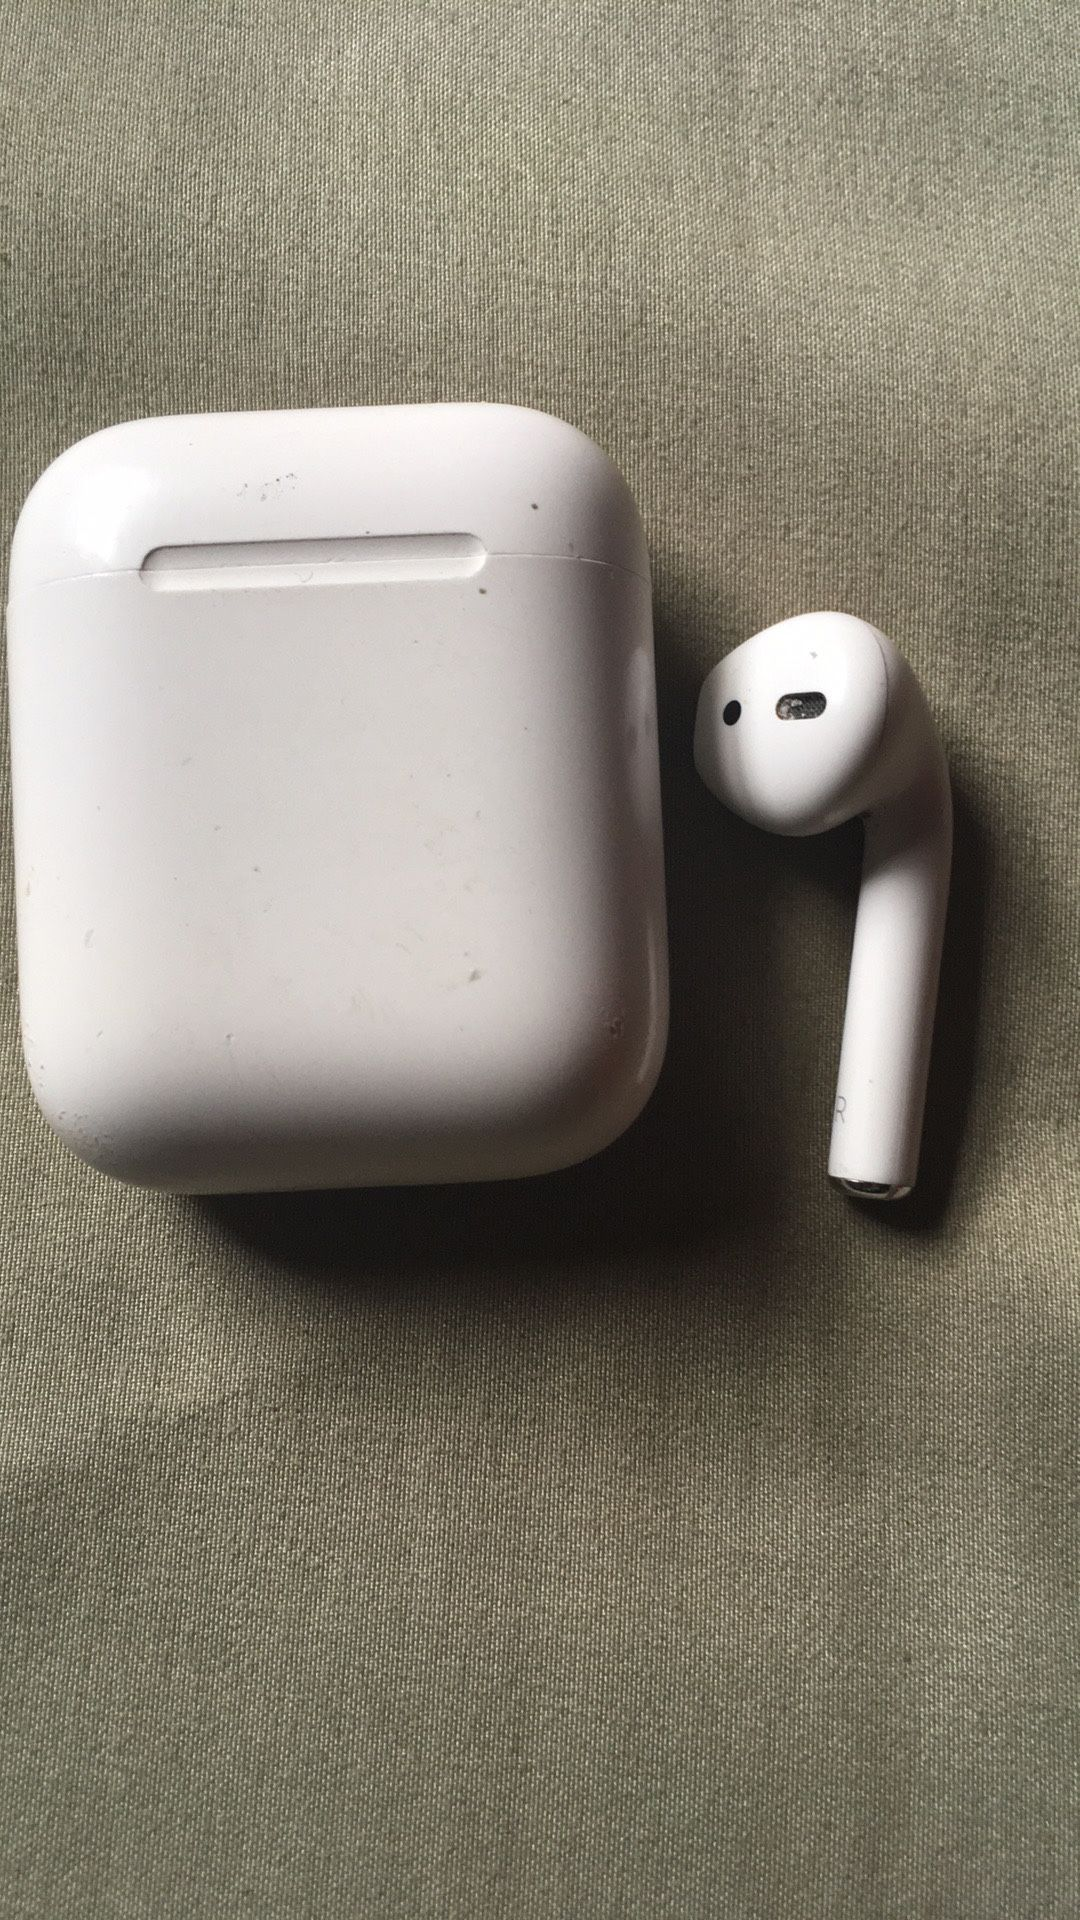 Right Apple air pod and charging box